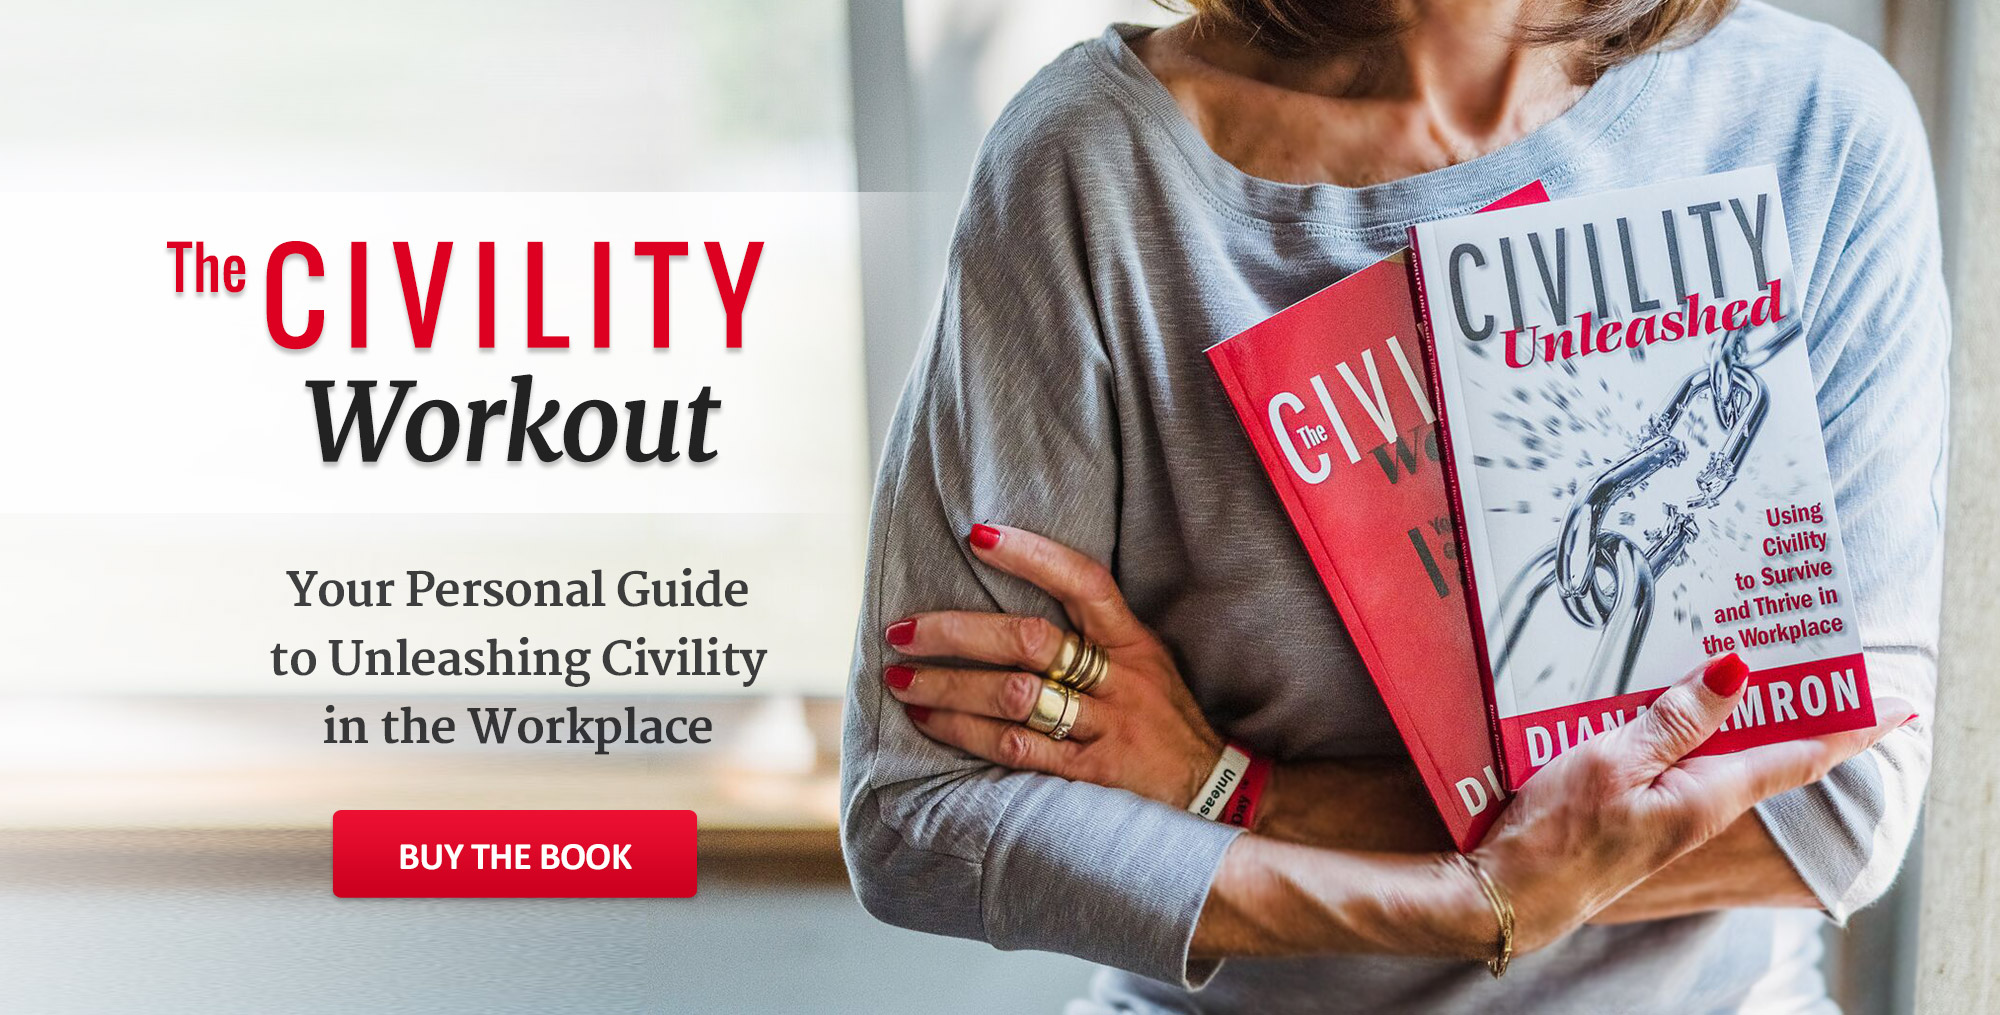 Diana Damron: Civility Workout, Civility Unleashed